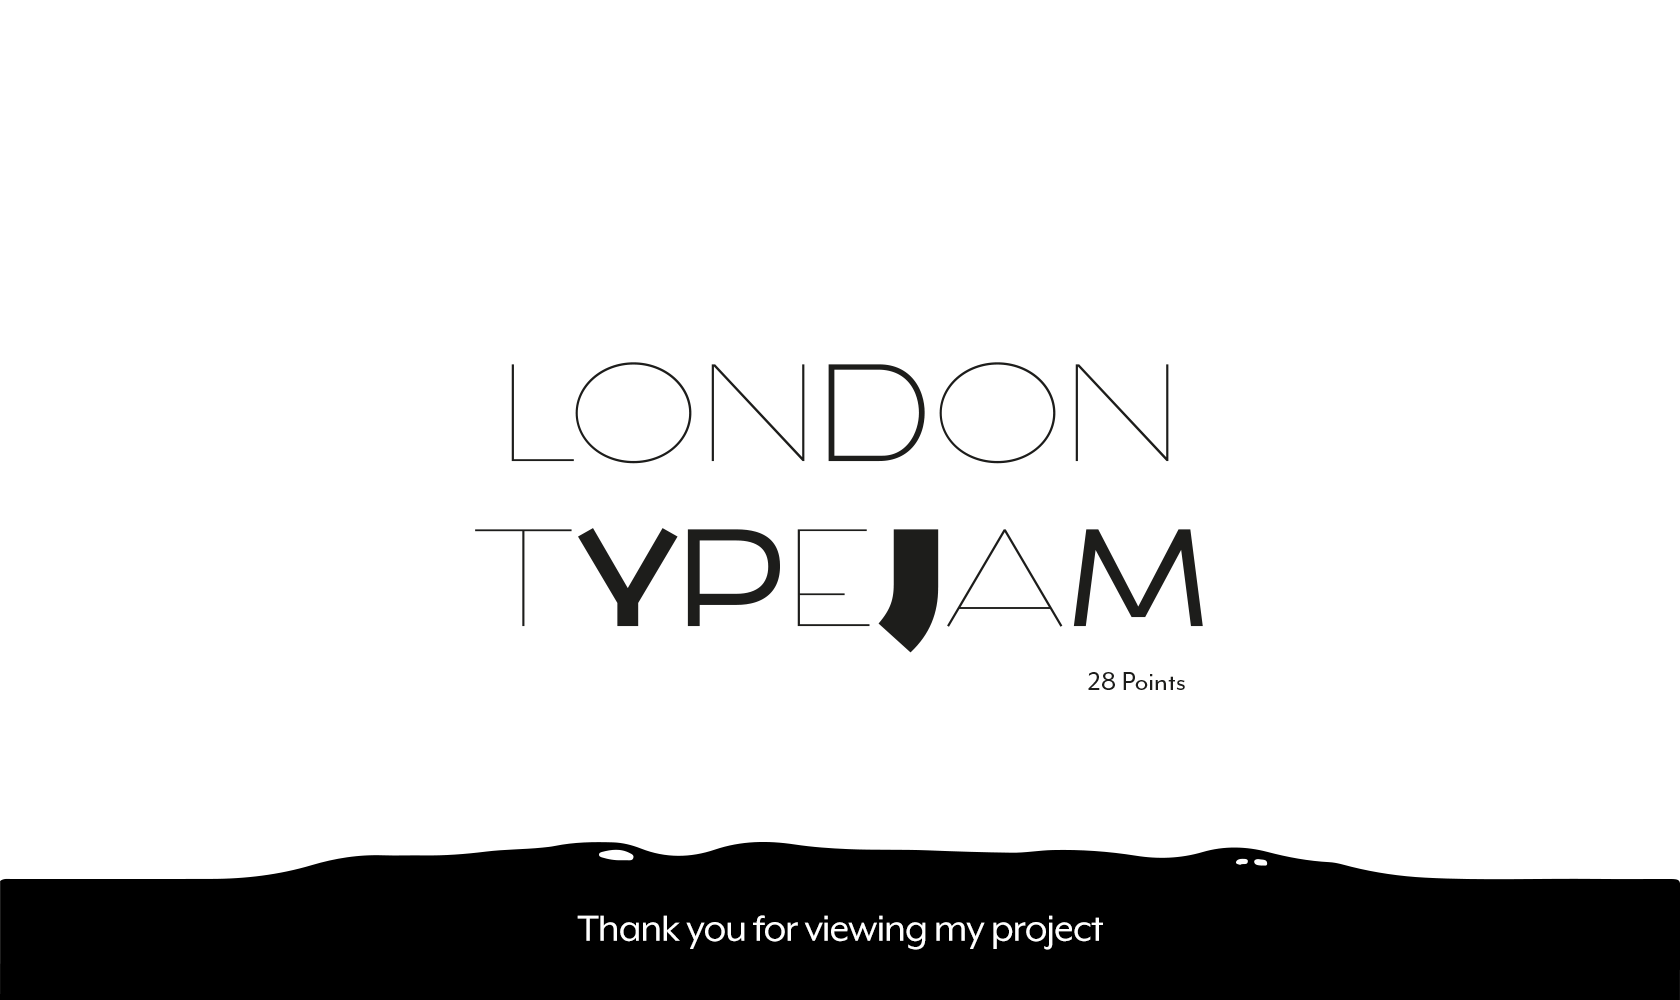 london-typejam-thanks-for-viewing-my-project